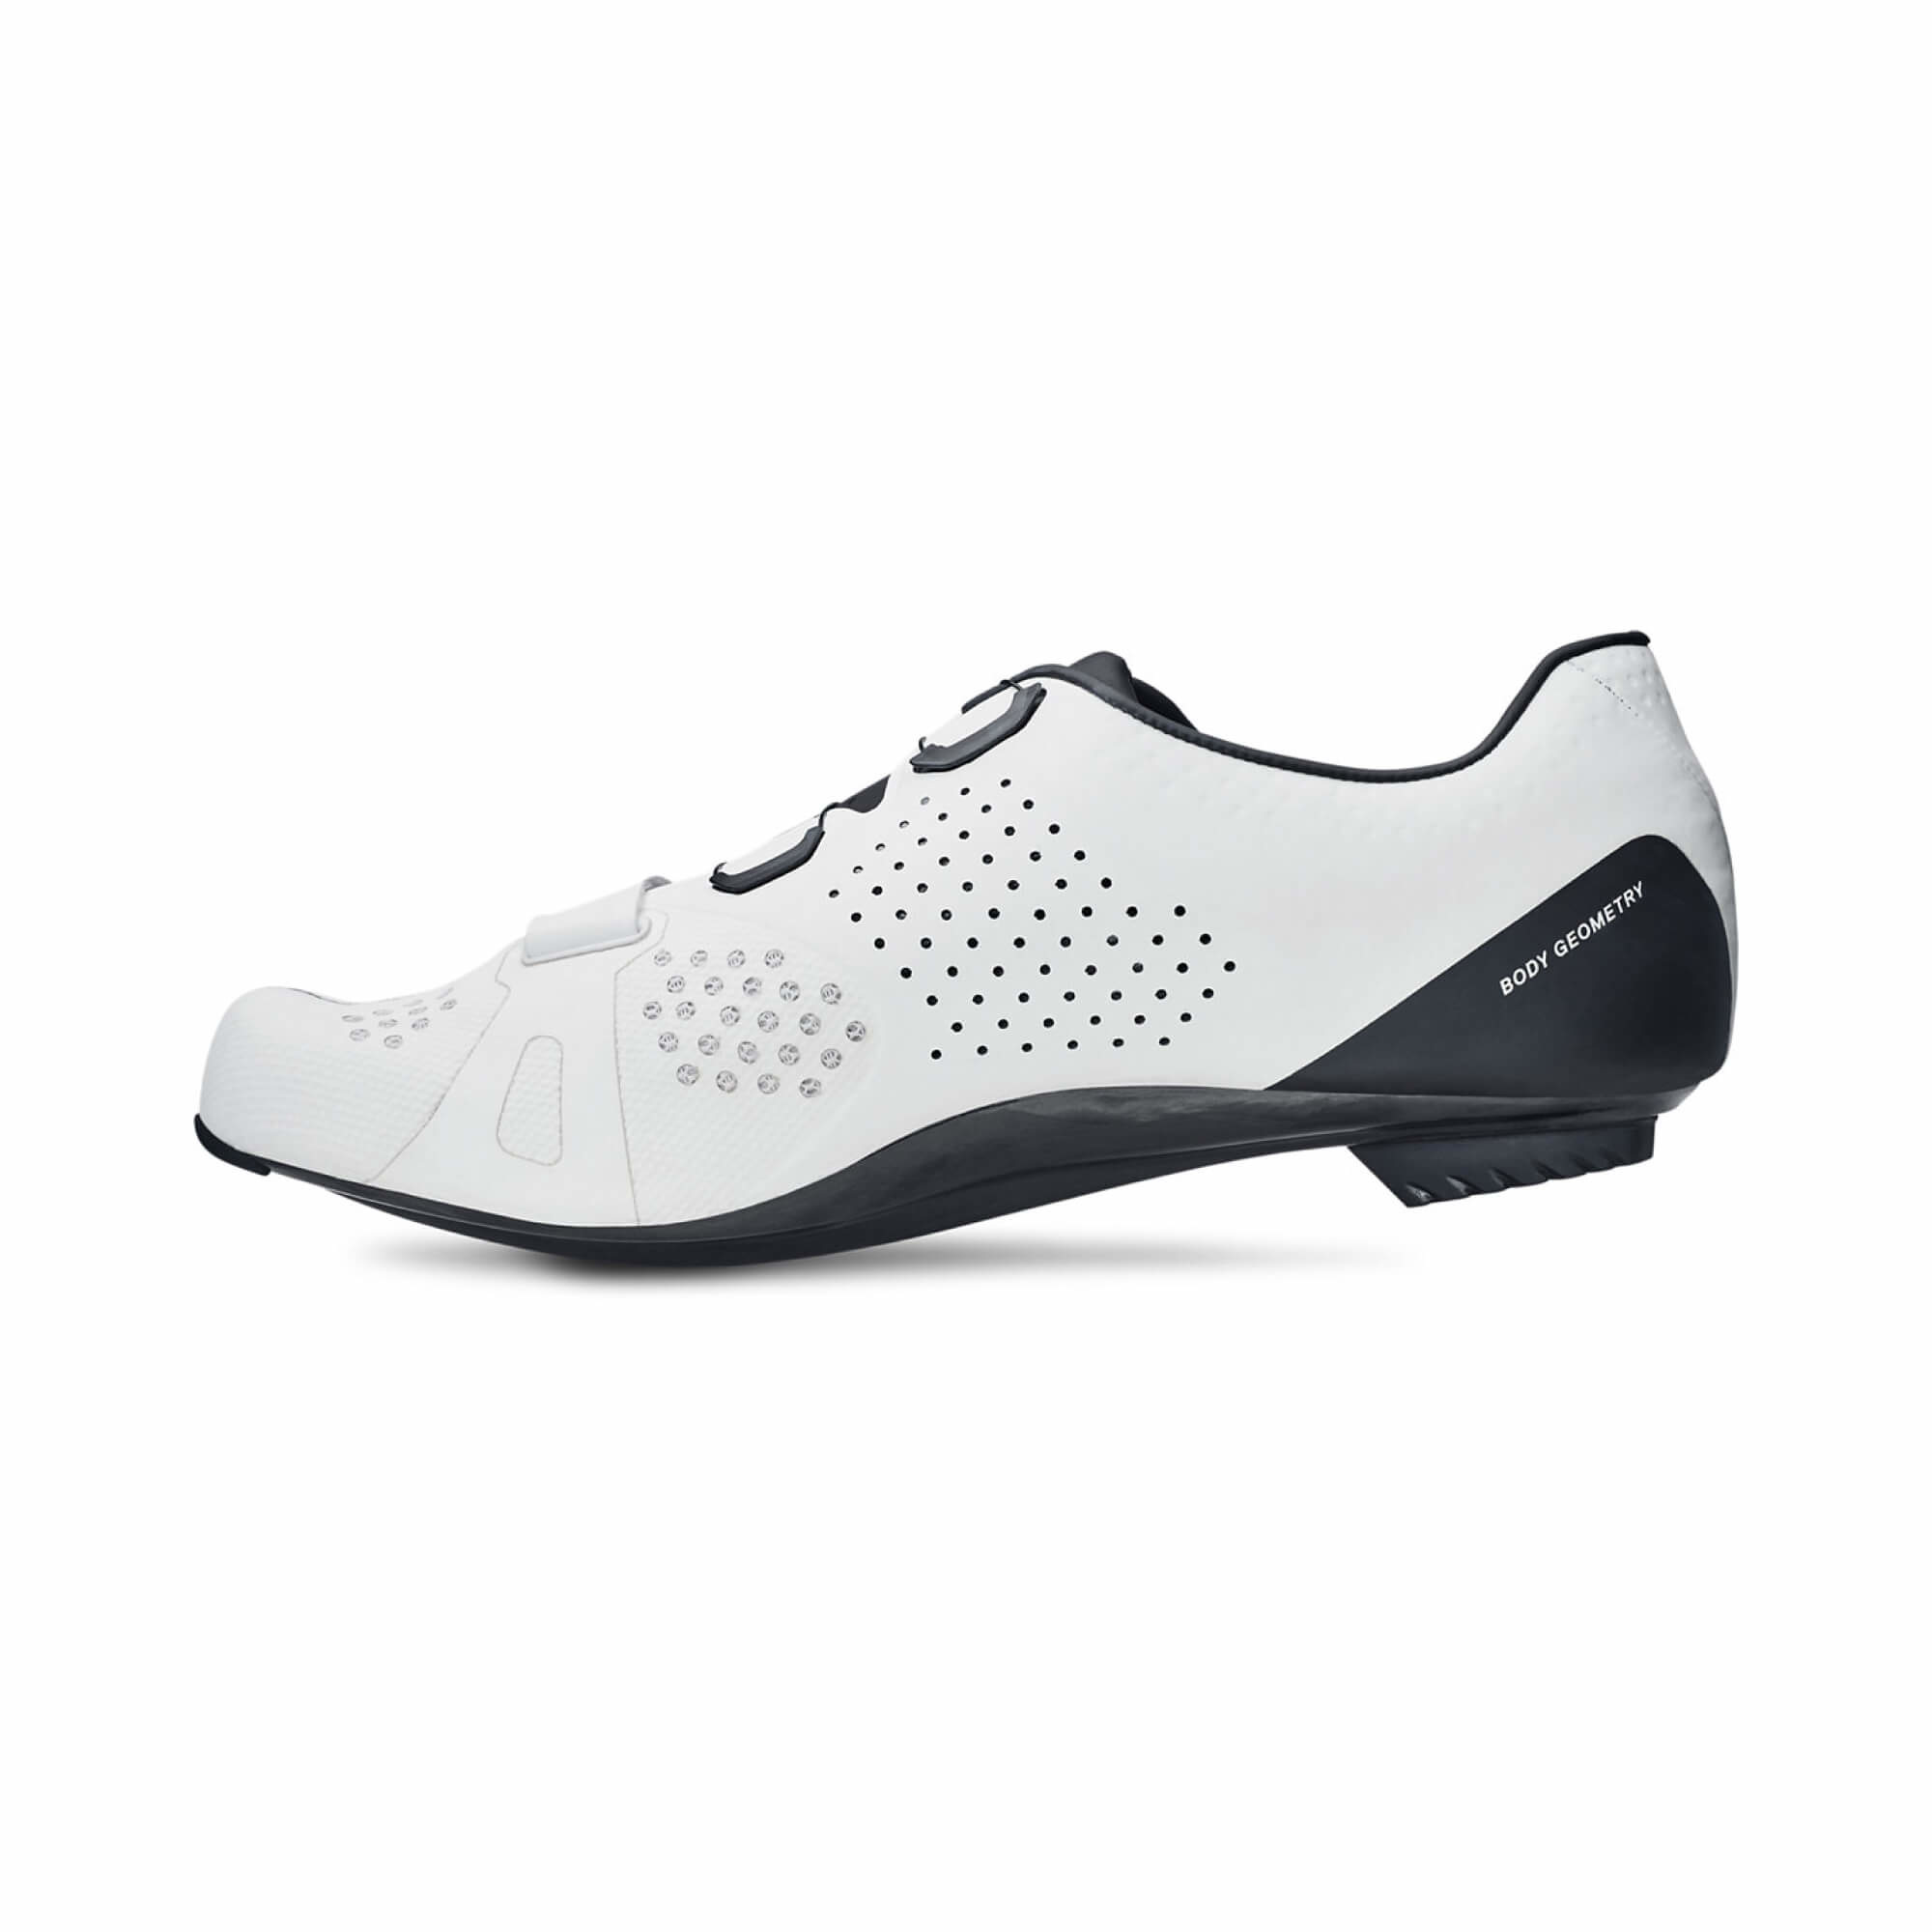 Torch 3.0 Road Shoe-7